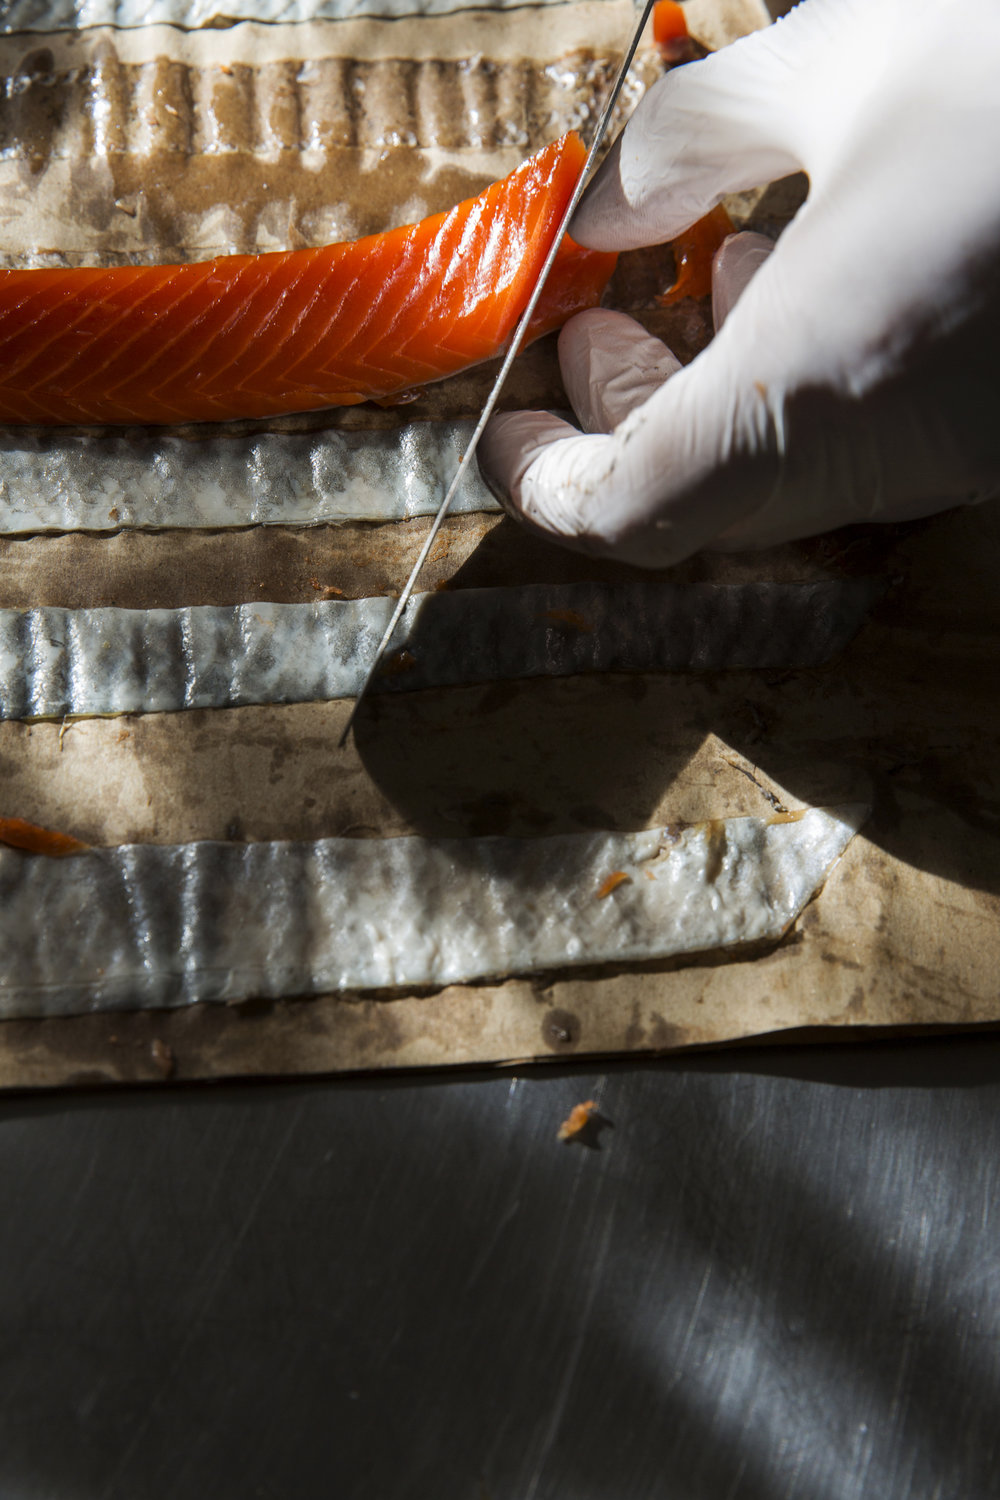 Burggraaf_Charity-Seattle_Food_Photographer-Willows_Salmon.jpg